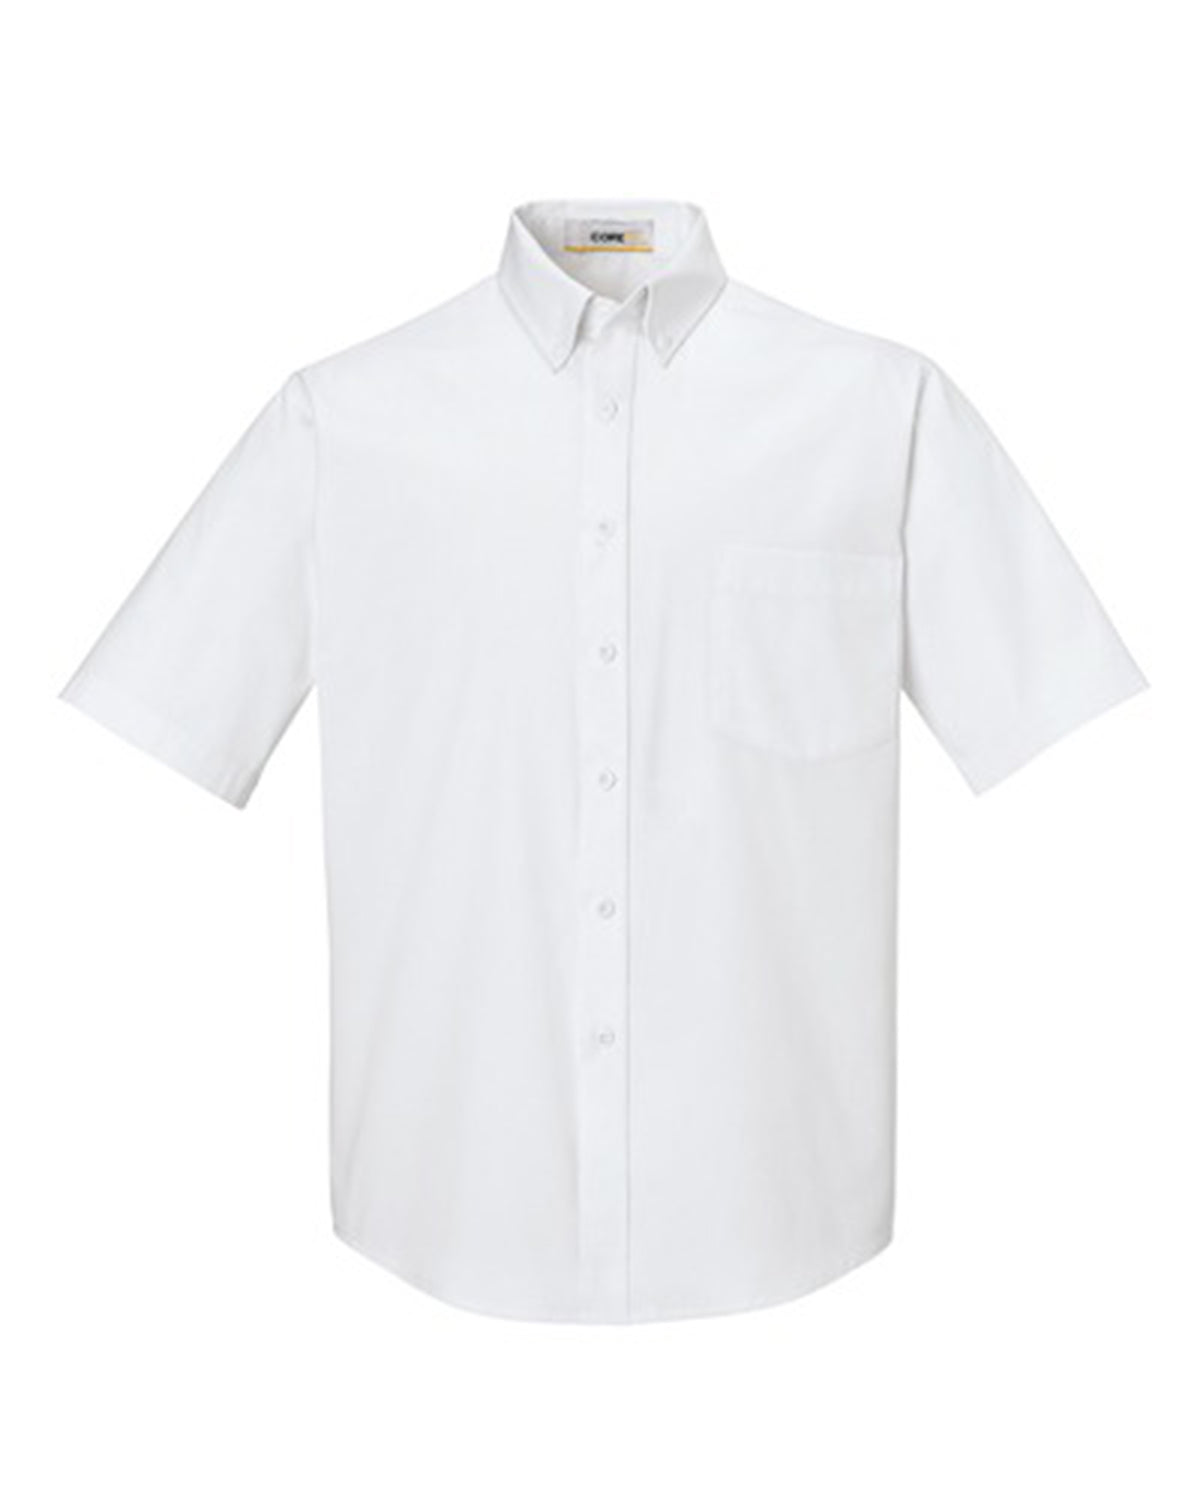 CORE 365 MEN'S OPTIMUM SHORT SLEEVE TWILL DRESS SHIRT